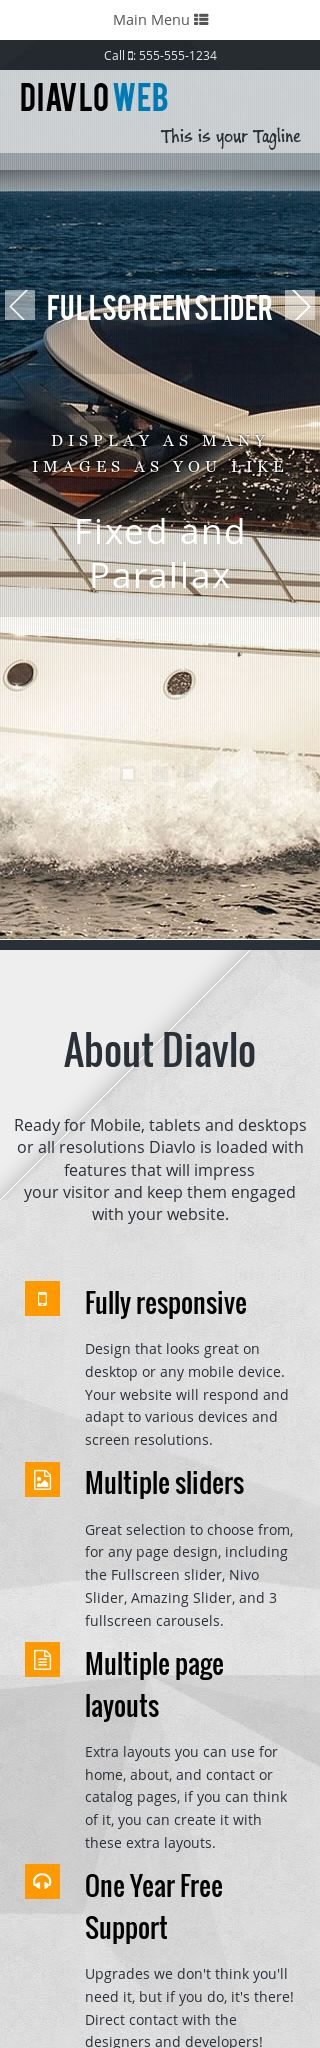 Mobile: Boating Dreamweaver Template